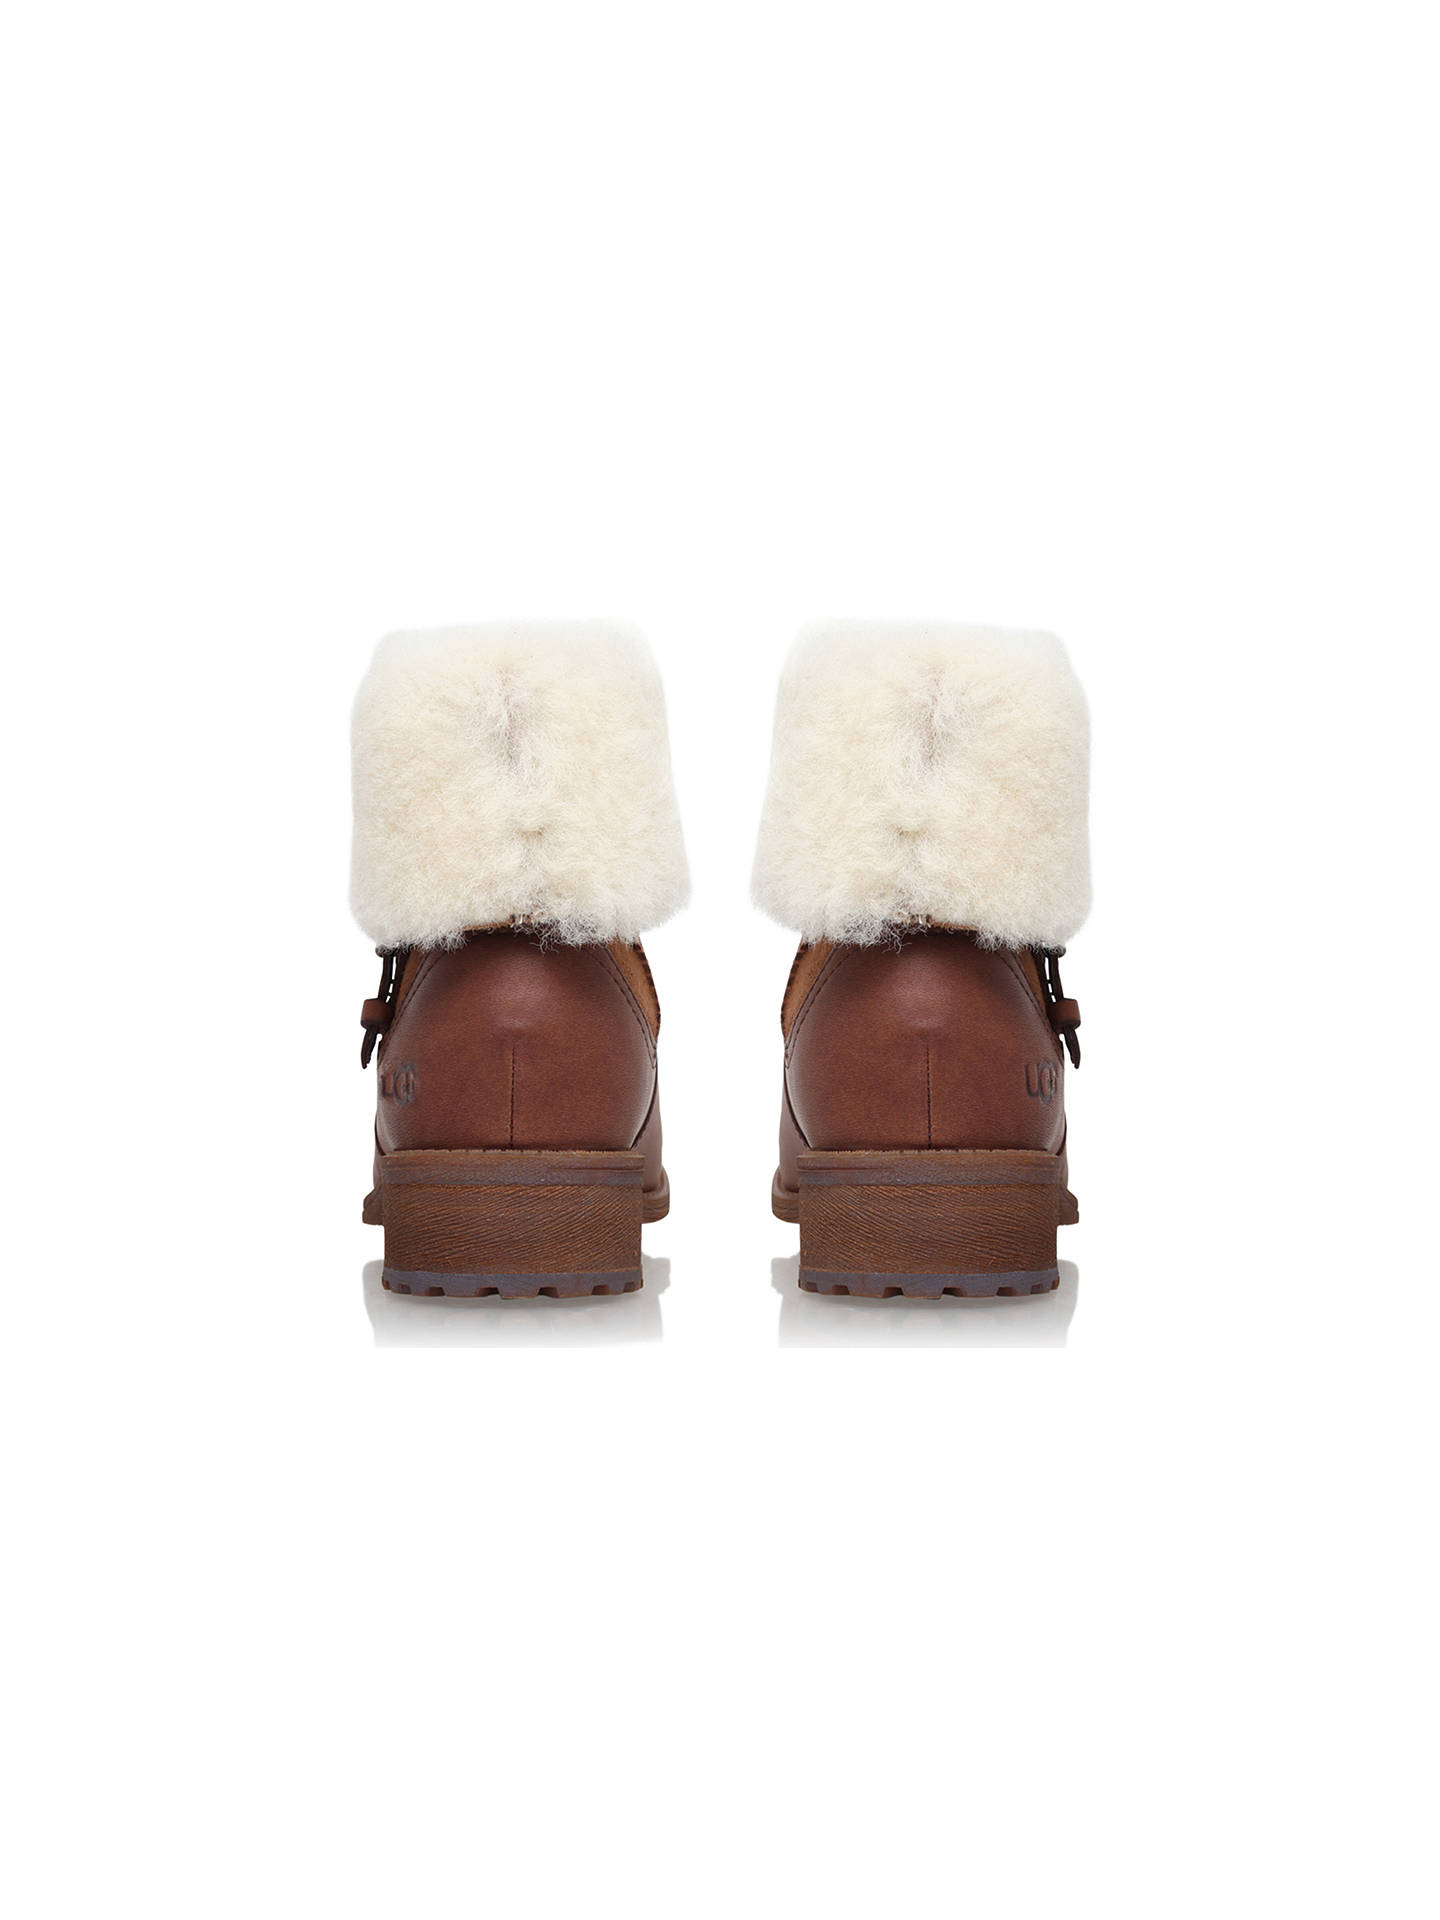 409d4ad662f UGG Chyler Block Heeled Ankle Boots at John Lewis & Partners